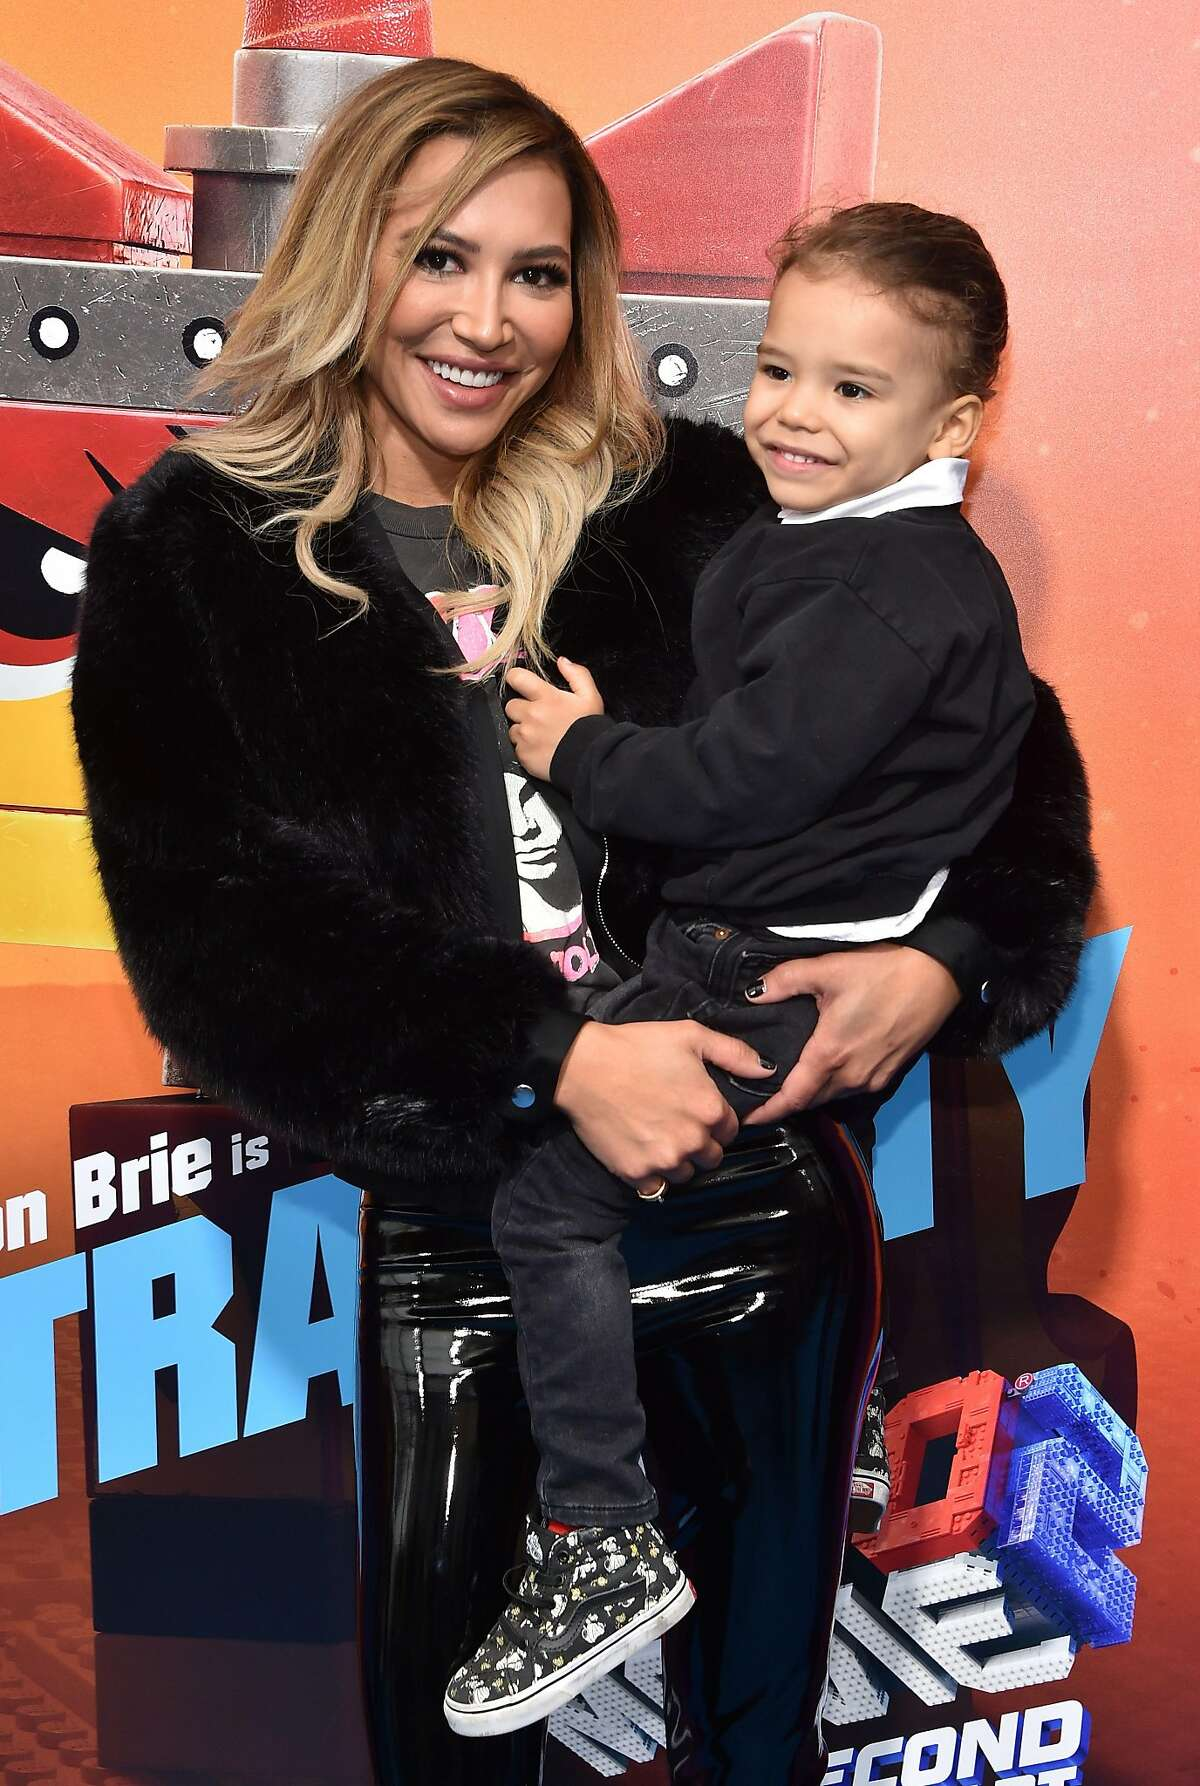 """(FILES) In this file photo US actress Naya Rivera and son Josey Hollis Dorsey arrive for the premiere of """"The Lego Movie 2: The Second Part"""" at the Regency Village theatre on February 2, 2019 in Westwood, California. - """"Glee"""" star Naya Rivera is missing and feared drowned at a California lake, local officials said, with rescuers to continue a search for her on July 9, 2020.The Ventura County Sheriff's office earlier tweeted it was looking for a """"possible drowning victim"""" at the lake, and said a dive team was being deployed to the area.Rivera, 33, is best known for her role as high school cheerleader Santana Lopez in """"Glee"""", the TV series she starred in for six seasons. (Photo by Chris Delmas / AFP) (Photo by CHRIS DELMAS/AFP via Getty Images)"""